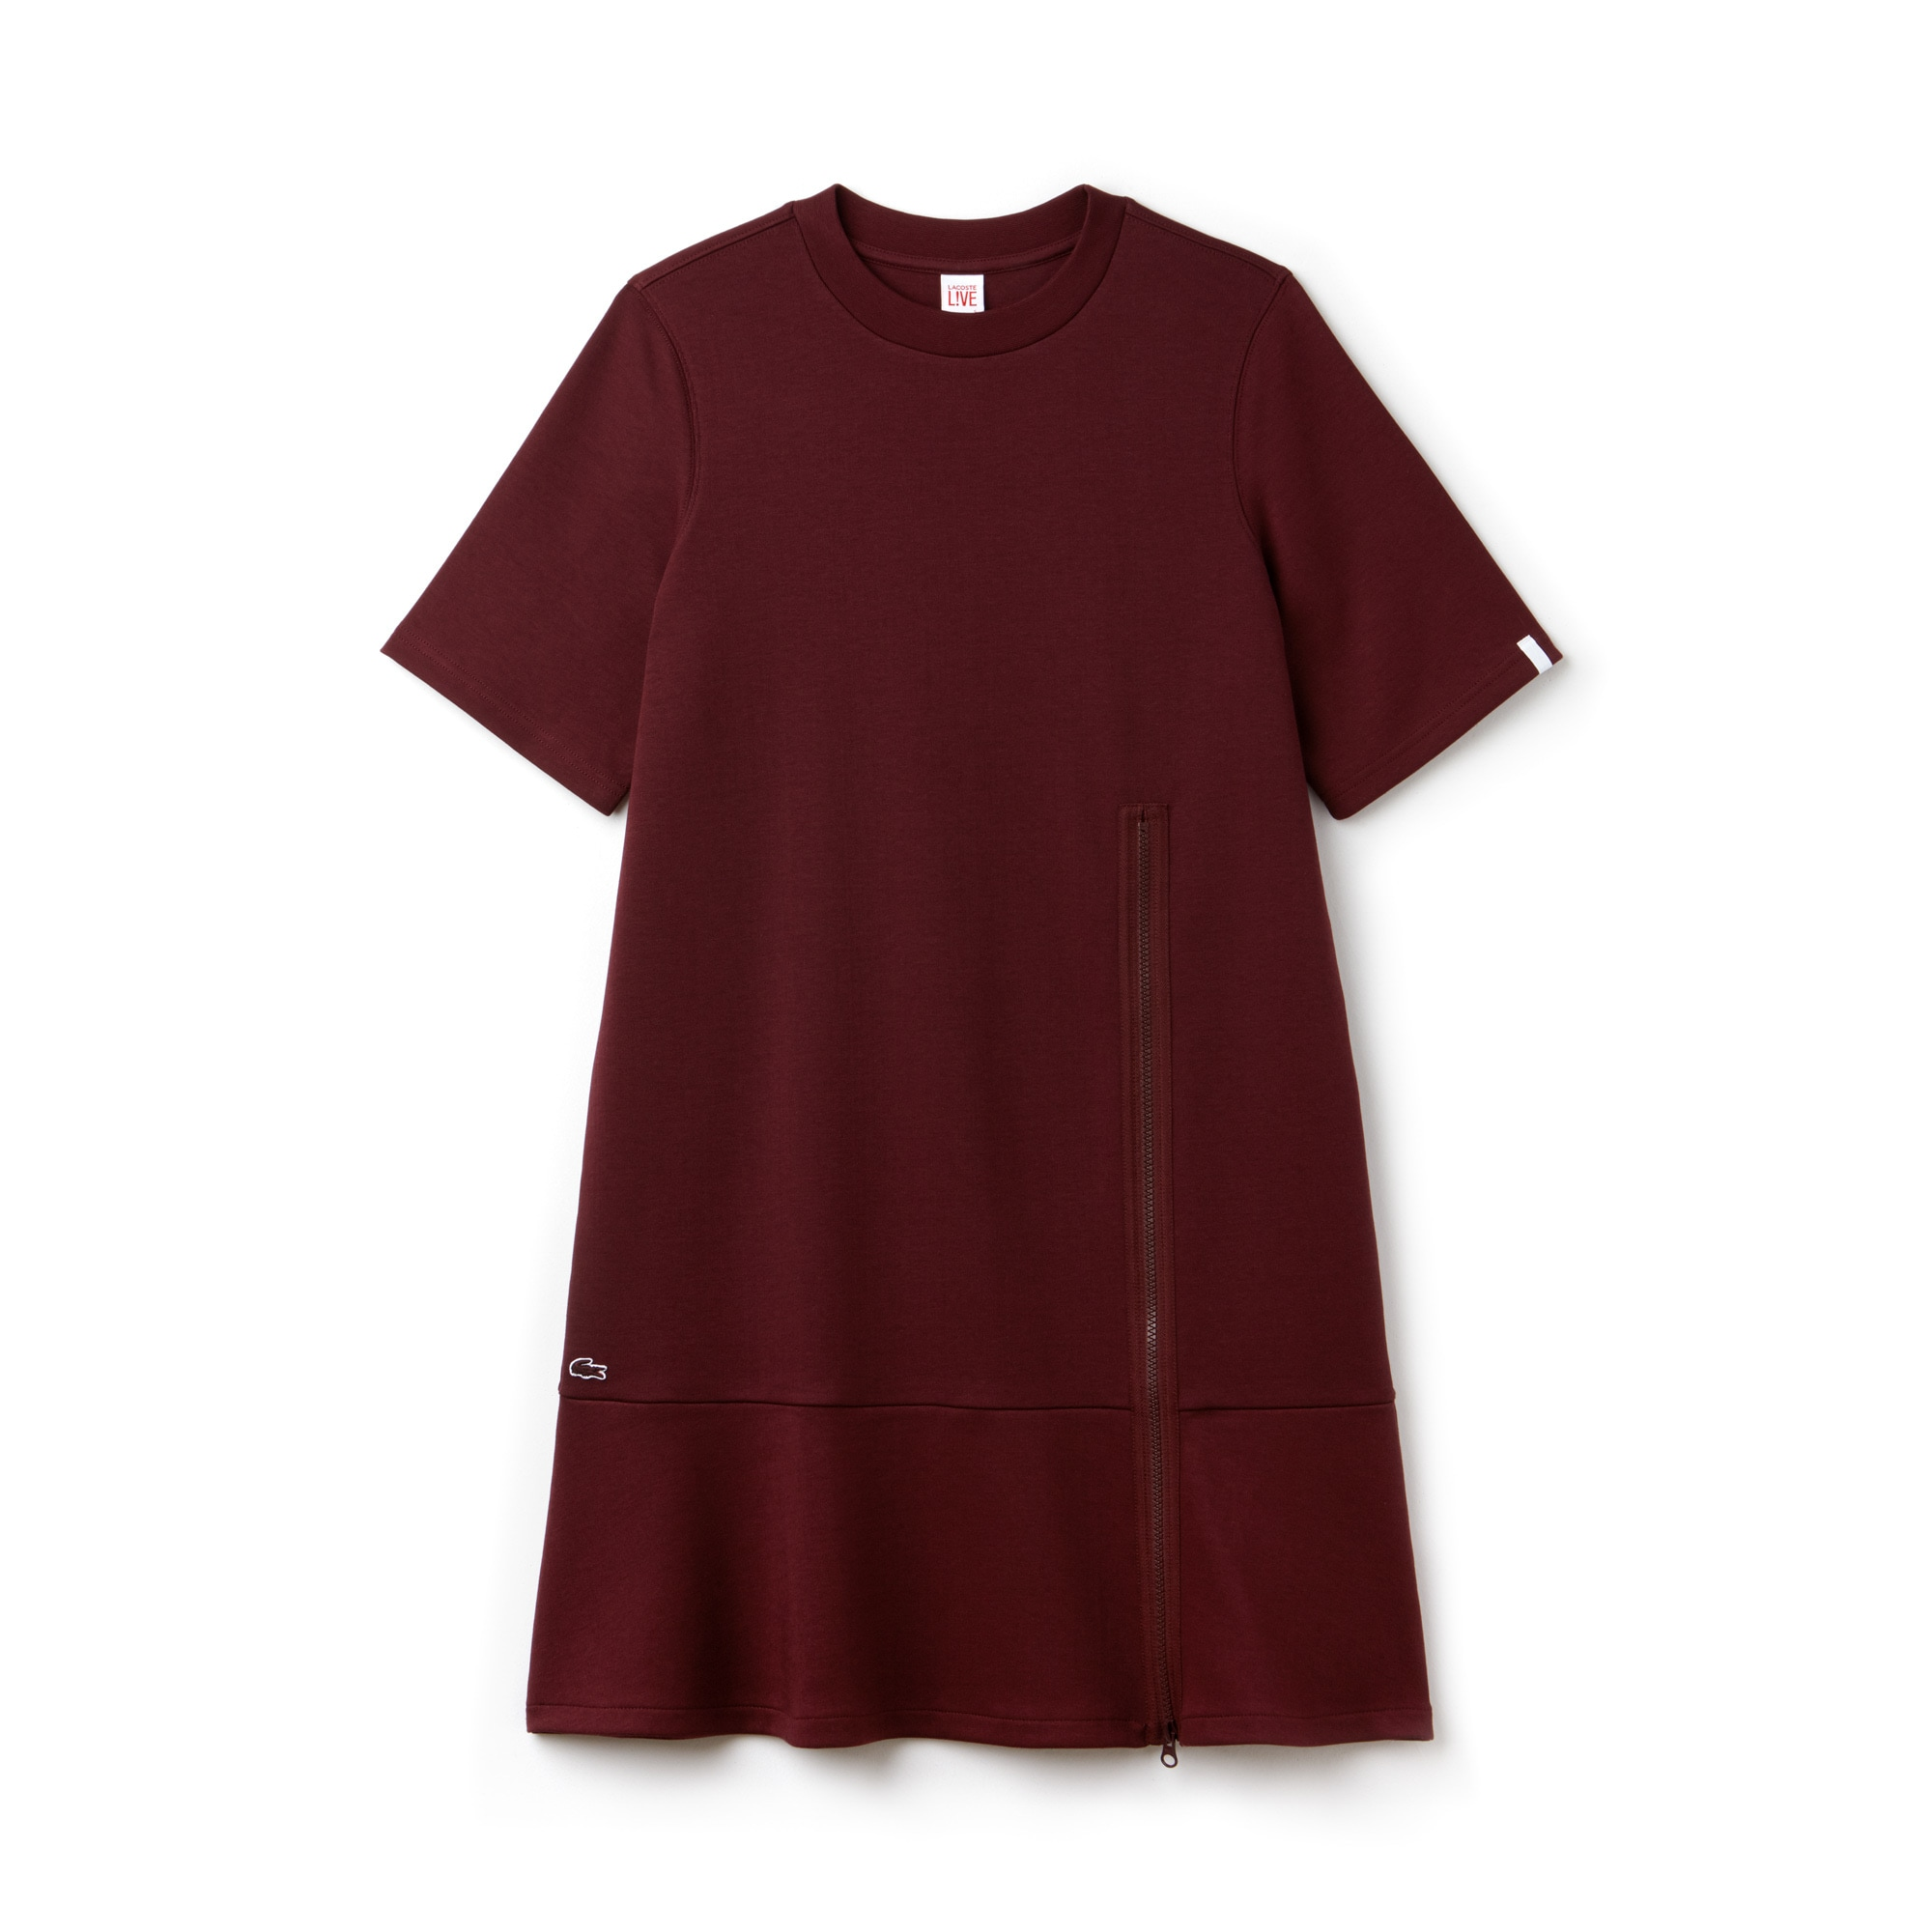 Women's Lacoste LIVE Interlock Zip Sweatshirt Dress